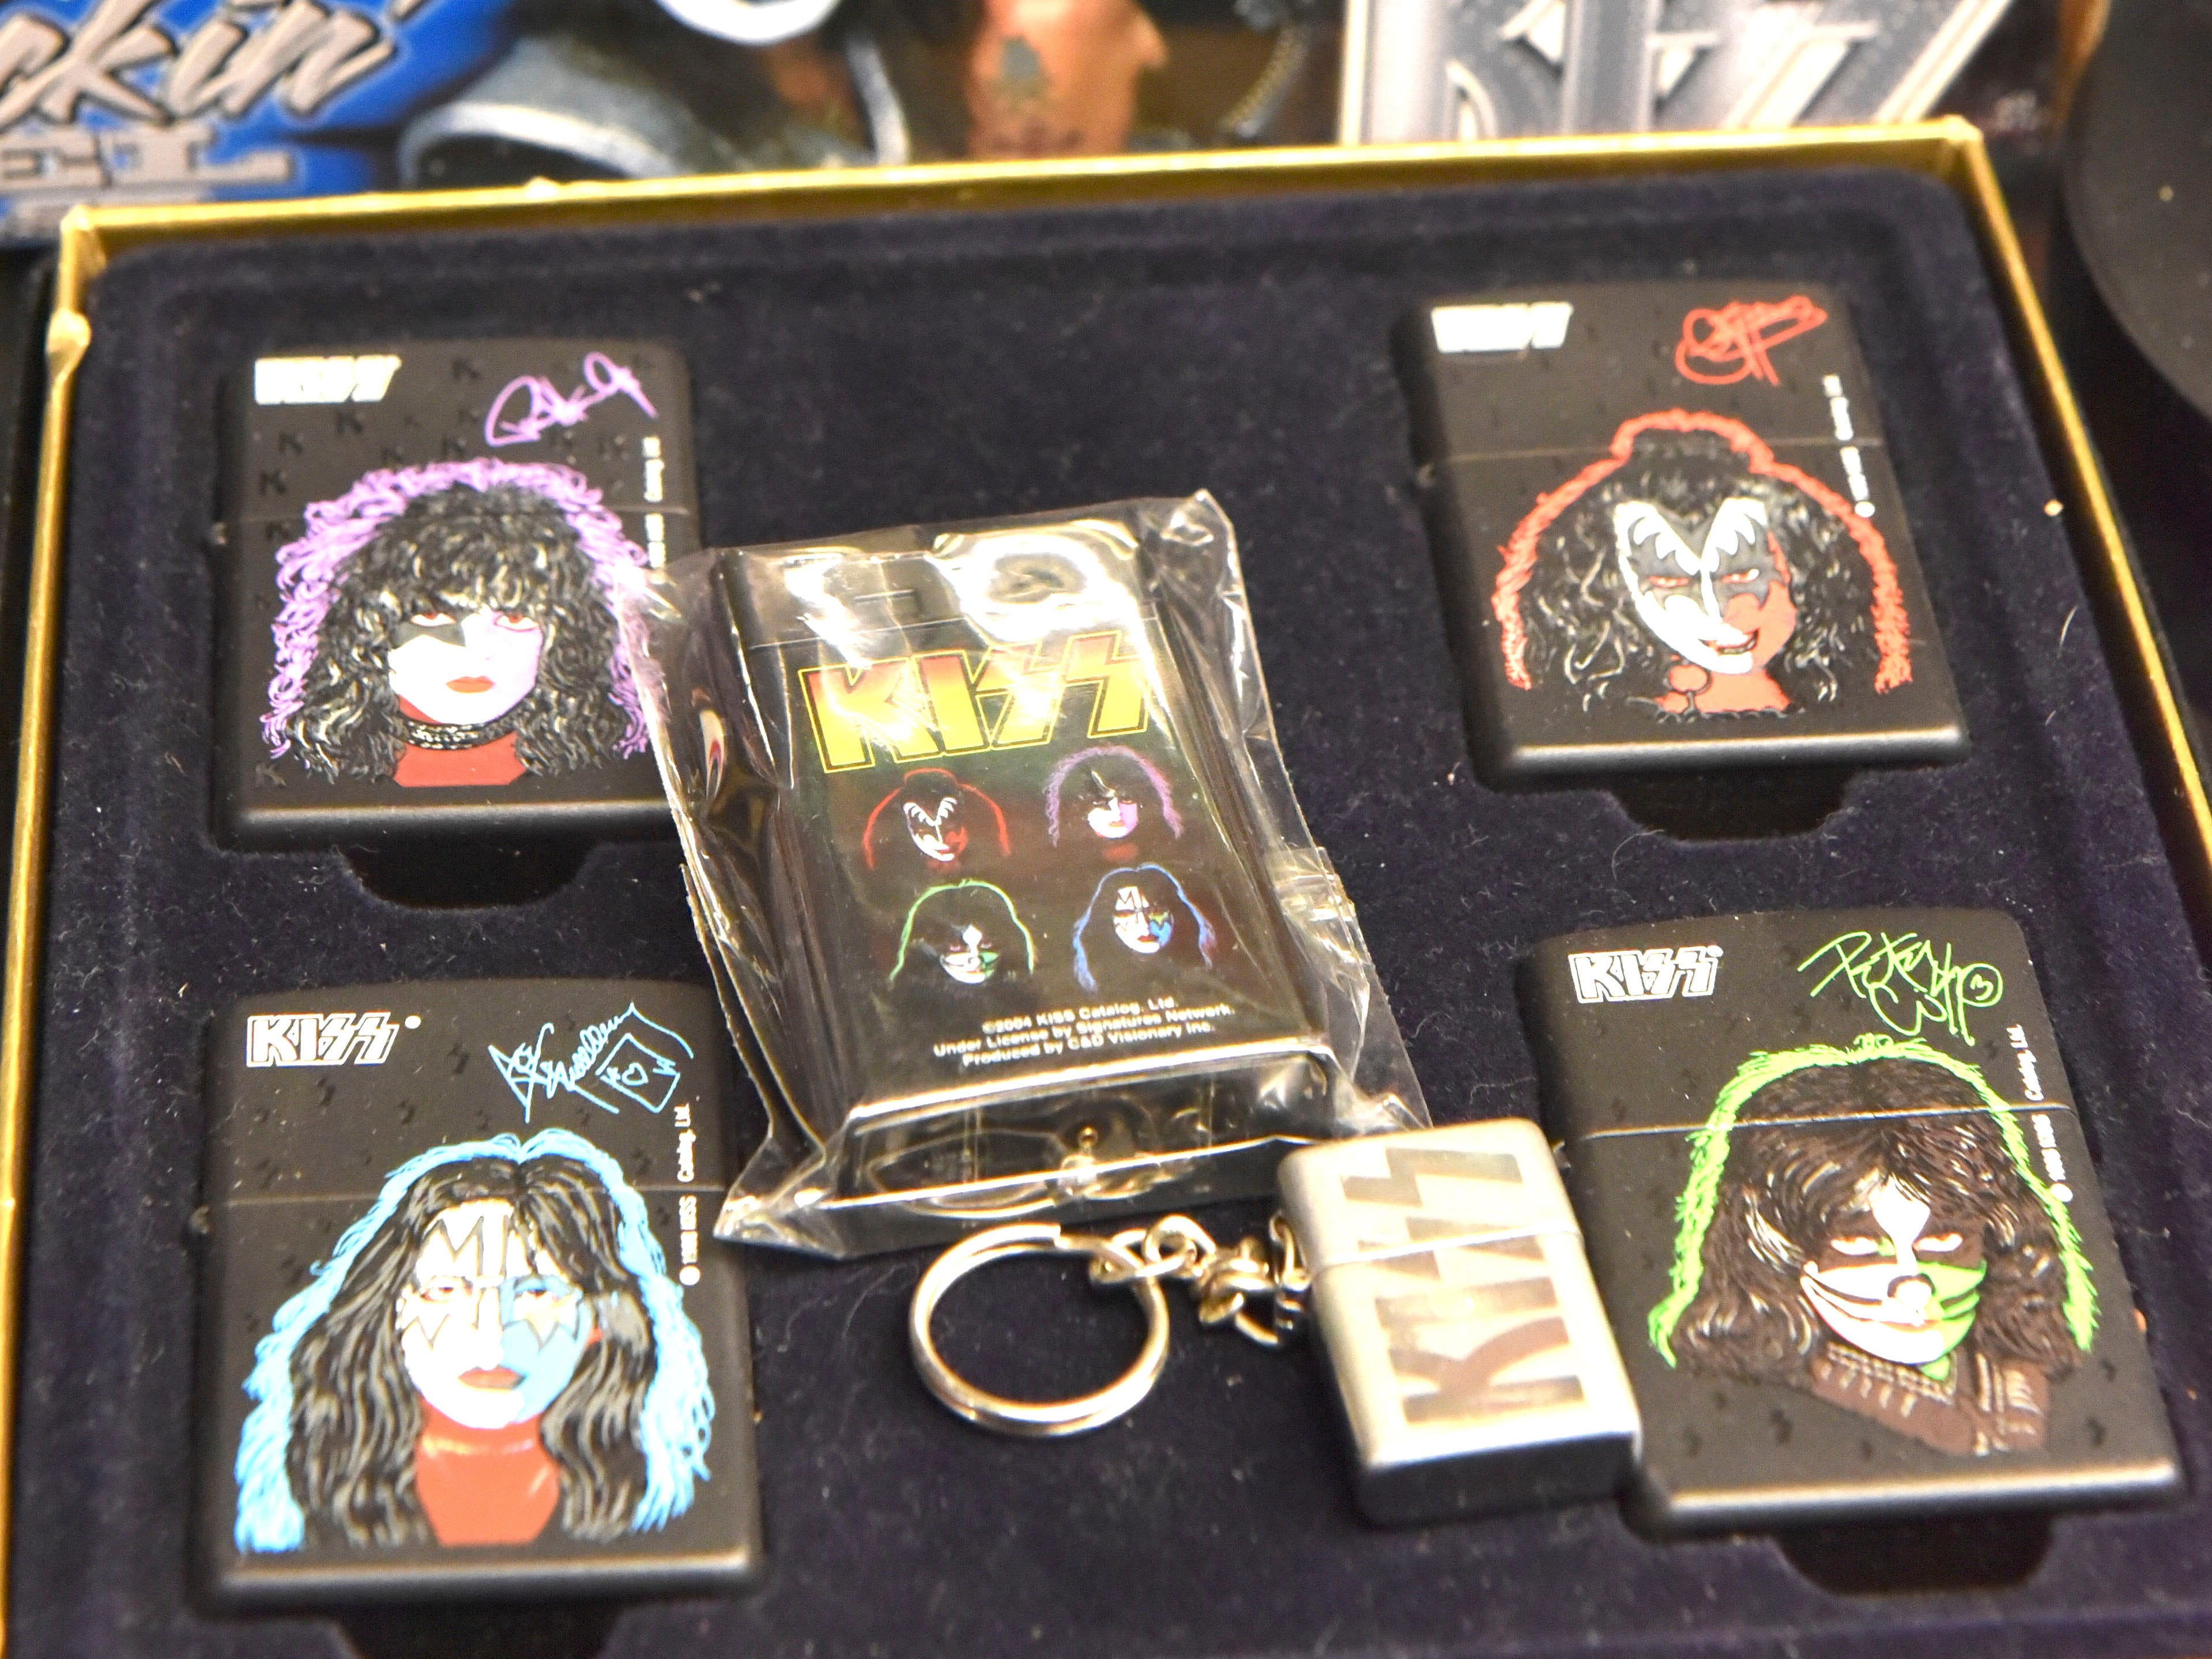 These are KISS lighters.